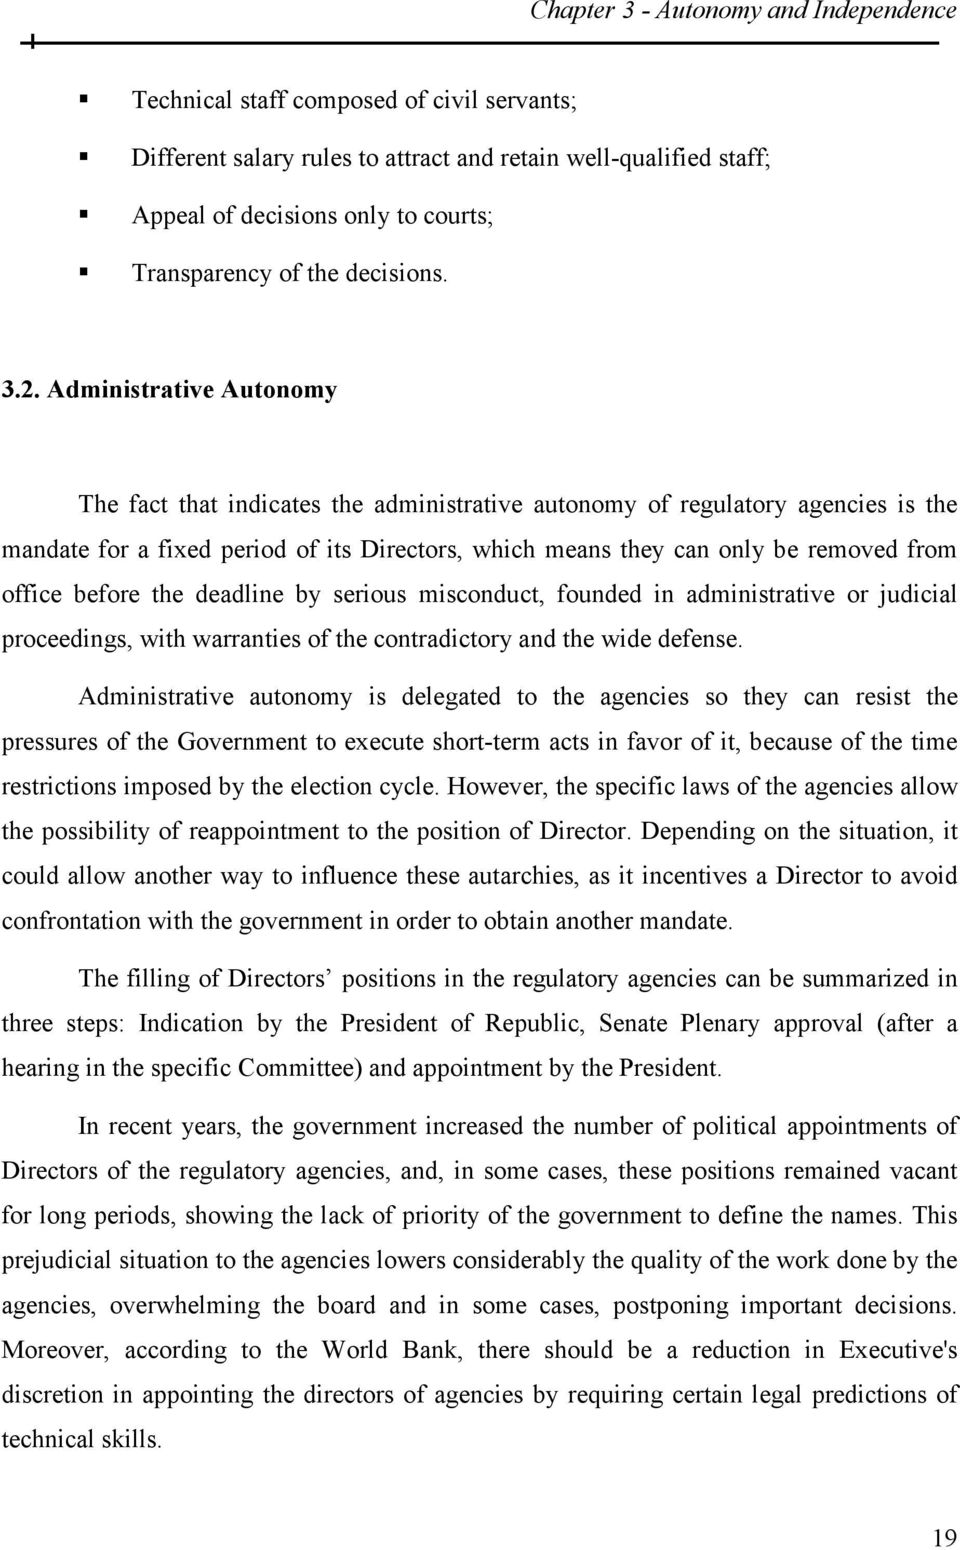 Administrative Autonomy The fact that indicates the administrative autonomy of regulatory agencies is the mandate for a fixed period of its Directors, which means they can only be removed from office